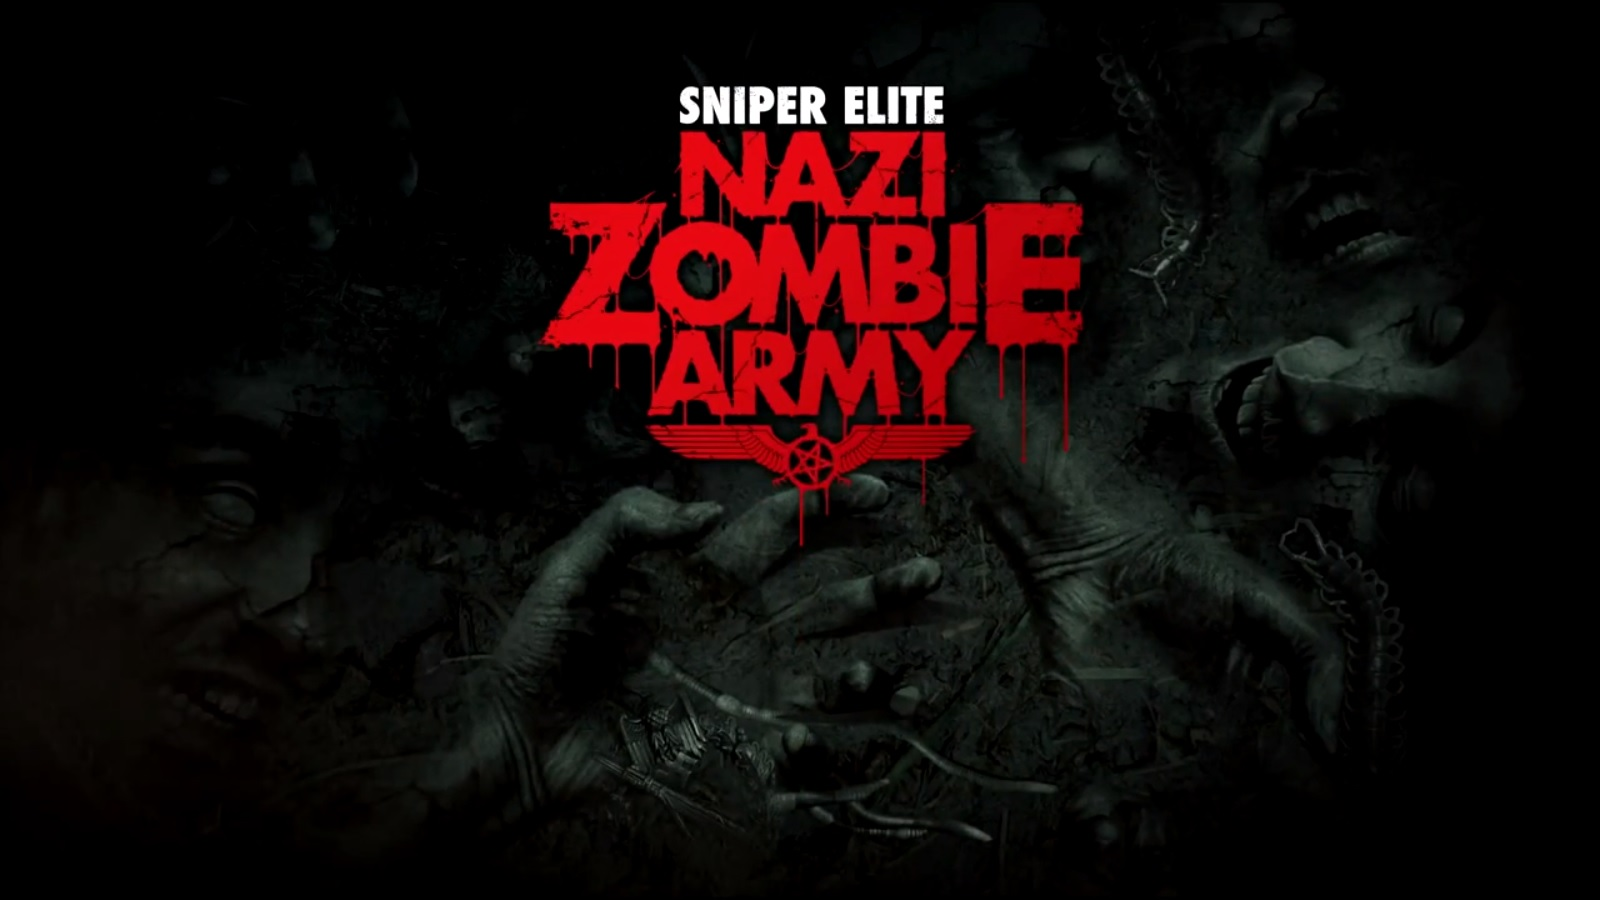 Sniper Elite: Nazi Zombie Army series hits half a Million sales